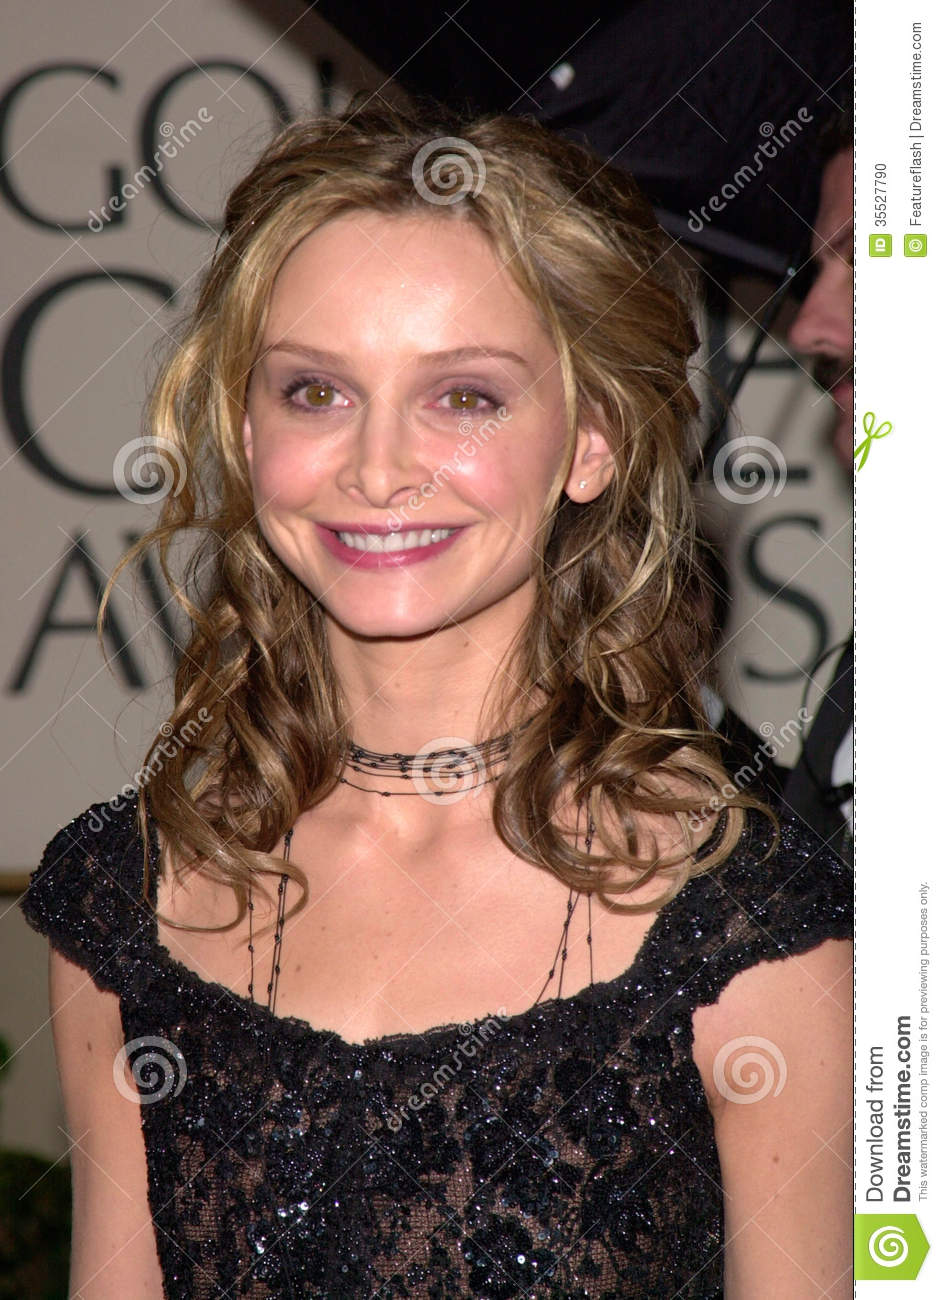 calista flockhart supergirlcalista flockhart instagram, calista flockhart santa baby, calista flockhart height, calista flockhart and robert downey jr, calista flockhart and harrison ford, calista flockhart son, calista flockhart wdw, calista flockhart gif, calista flockhart 2012, calista flockhart leaves supergirl, calista flockhart snl, calista flockhart style, calista flockhart harrison ford son, calista flockhart 2013, calista flockhart 2015, calista flockhart golden globes, calista flockhart plastic surgery, calista flockhart supergirl, calista flockhart as cat grant, calista flockhart then and now